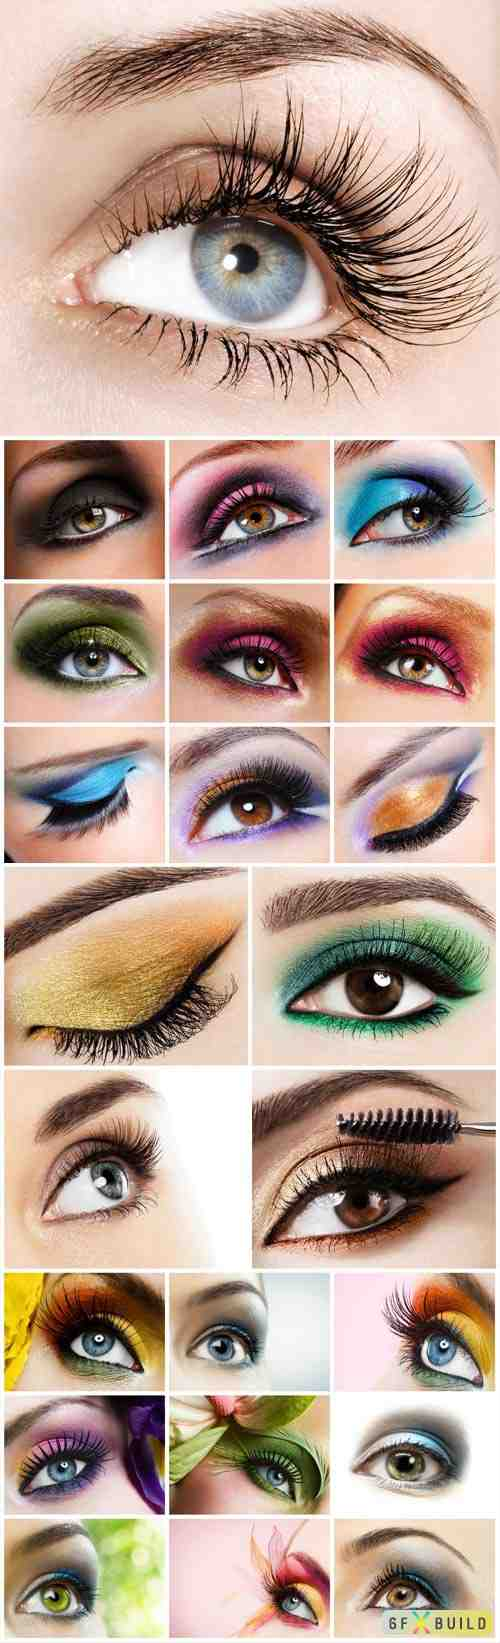 Eyes and eye makeup stock photo